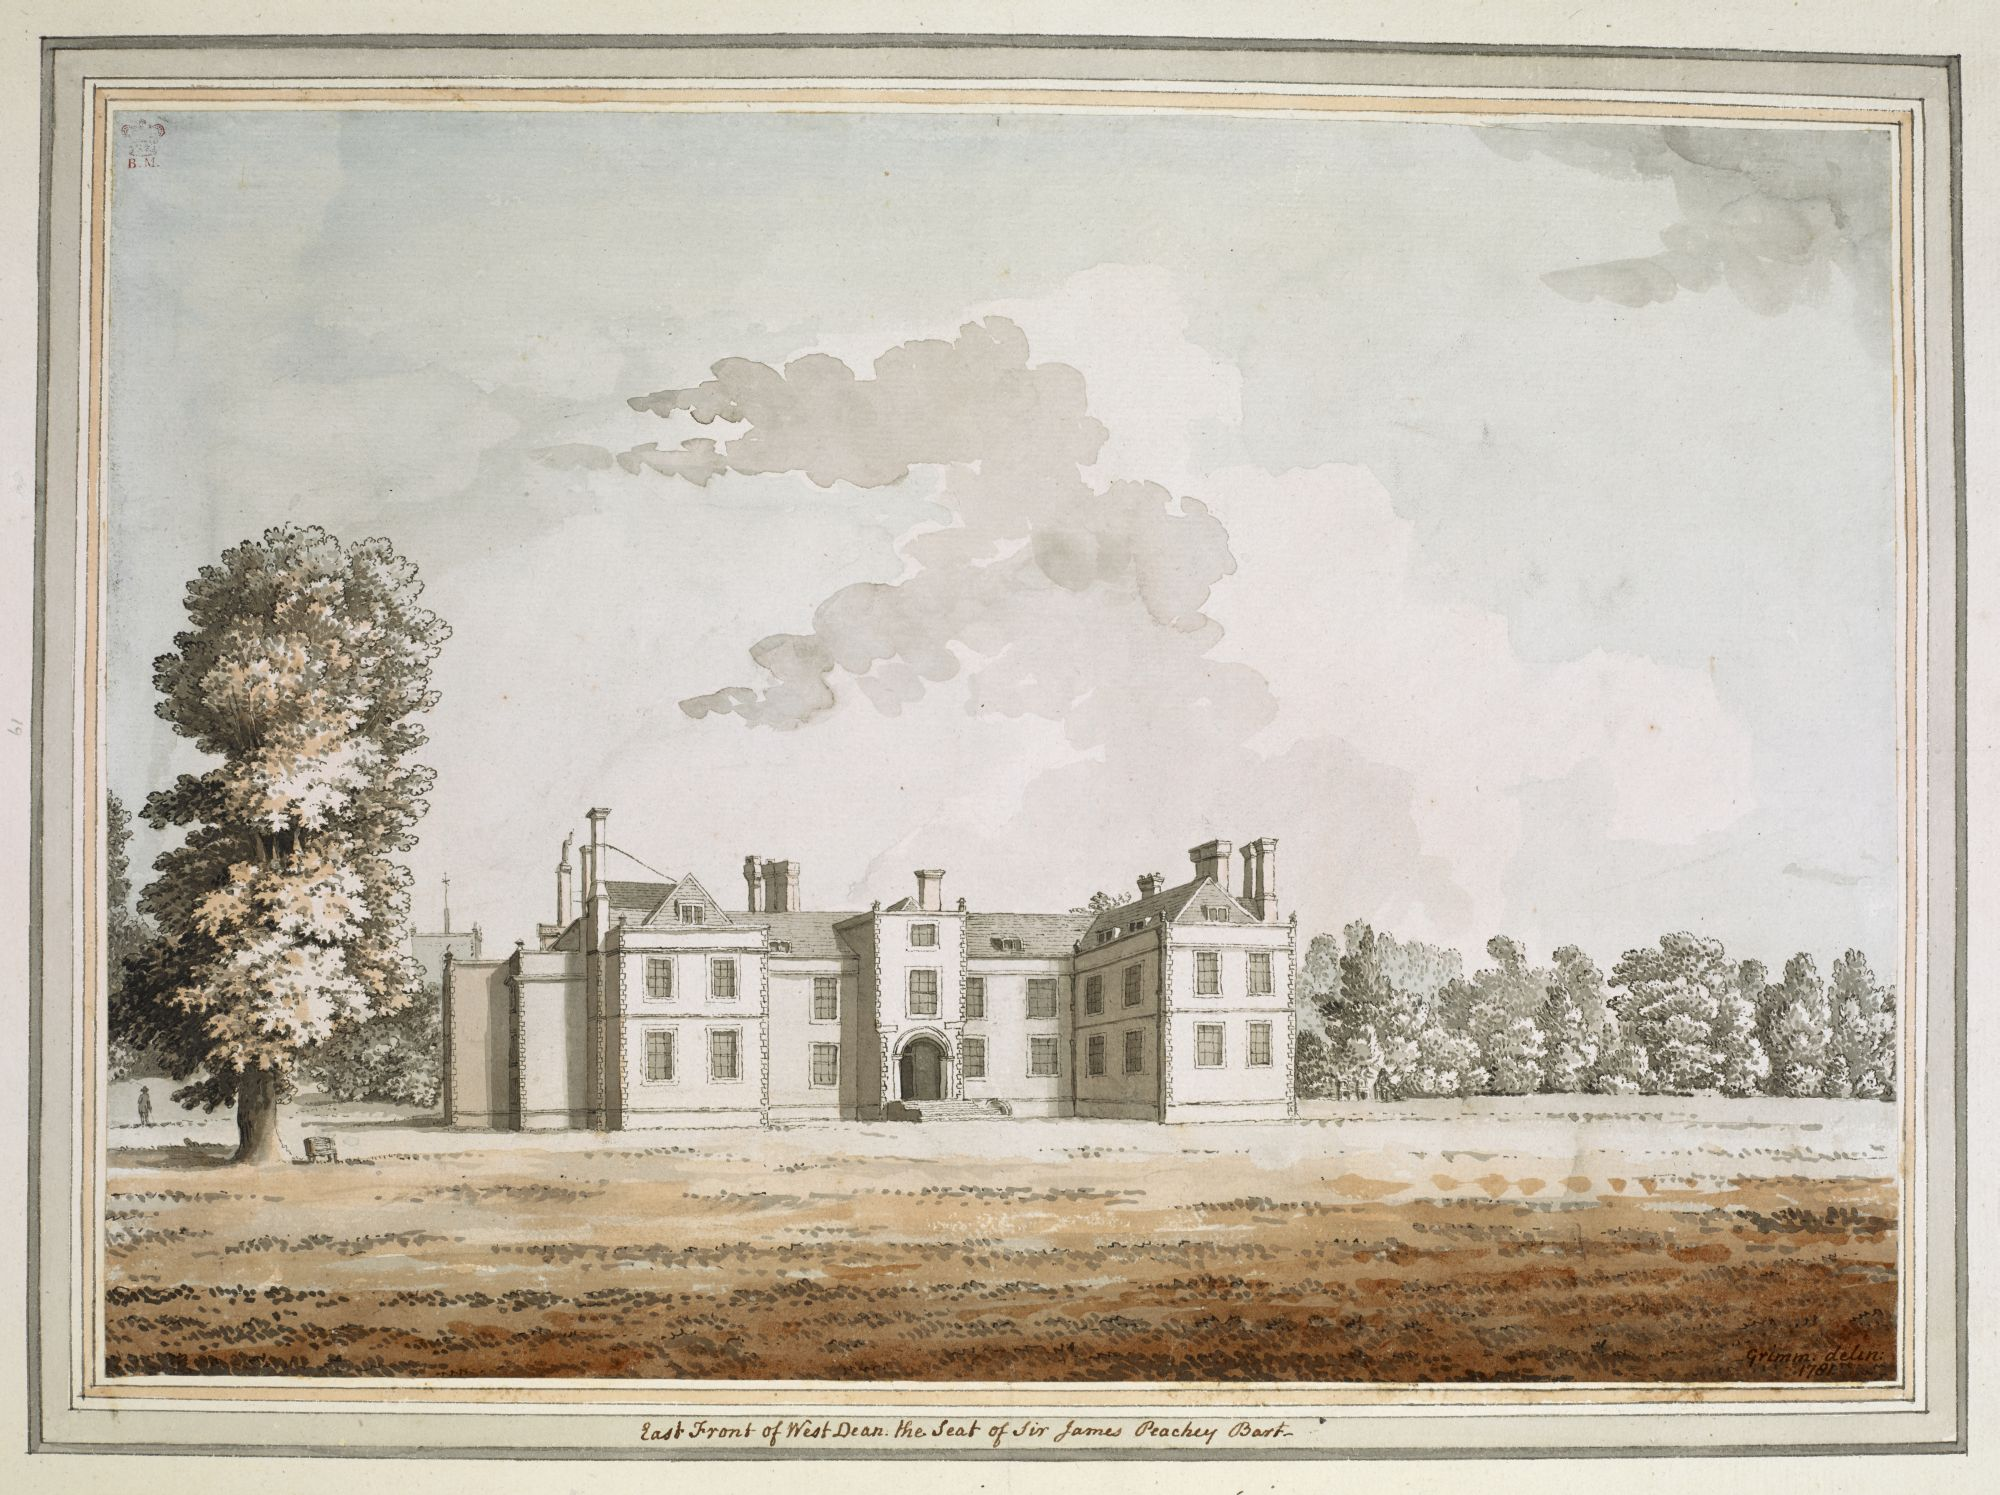 West Dean House, Sussex, by Samuel Hieronymus Grimm.